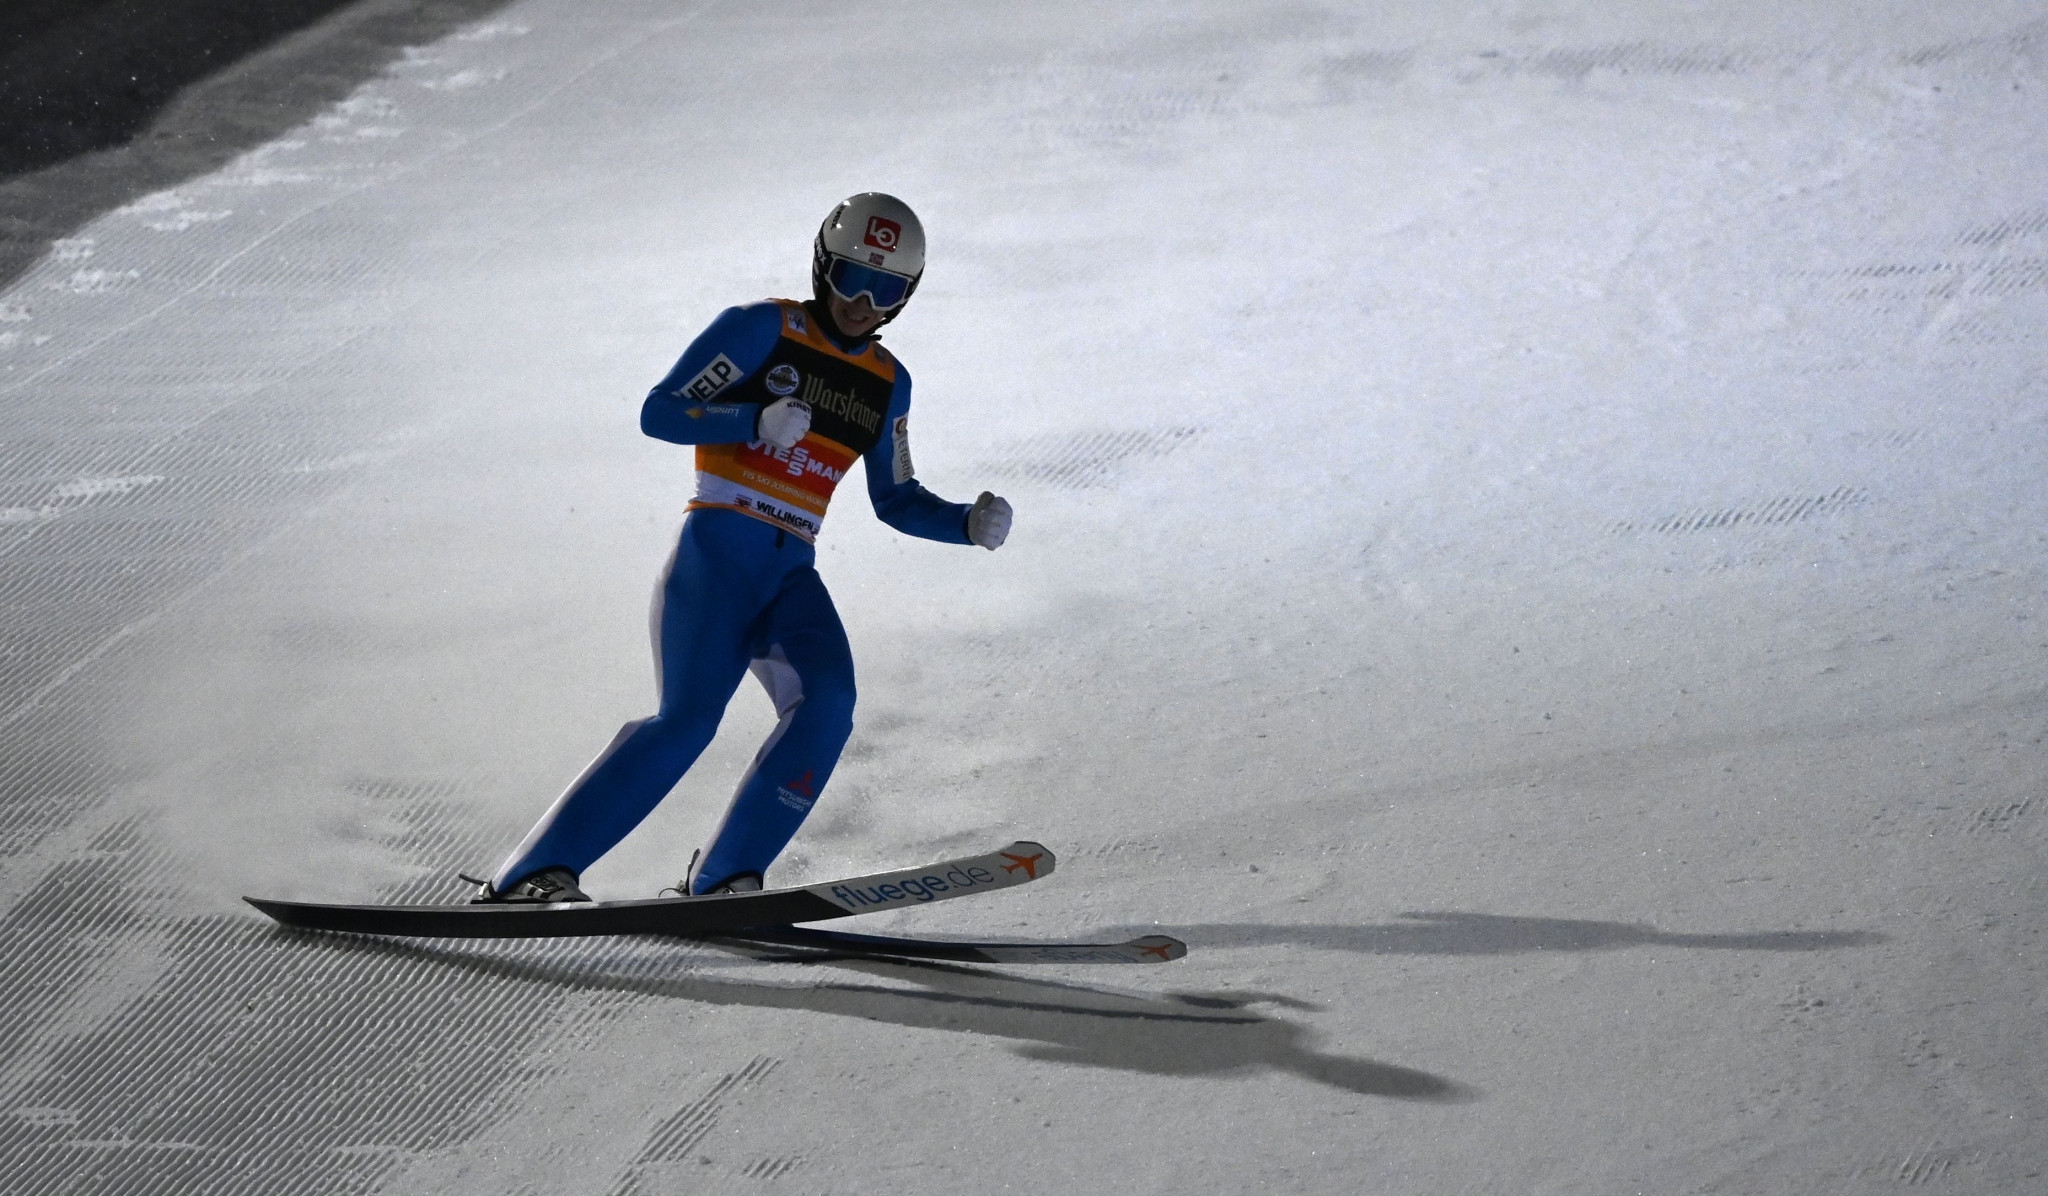 Granerud leads qualification at FIS Ski Jumping World Cup in Klingenthal